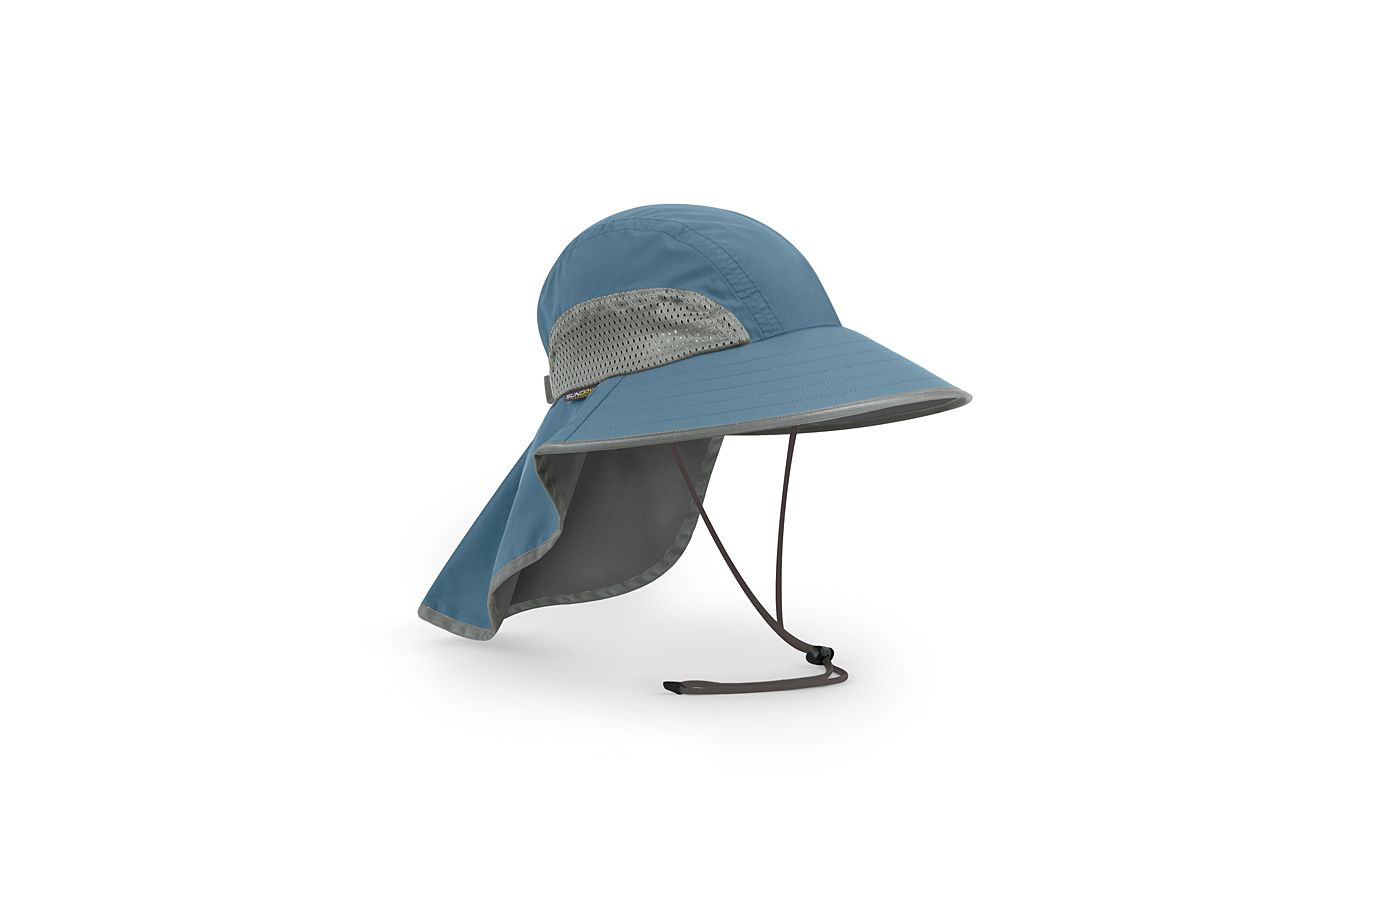 The Sunday Afternoons Adventure Hat in Lapis. Find it www.sundayafternoons.com